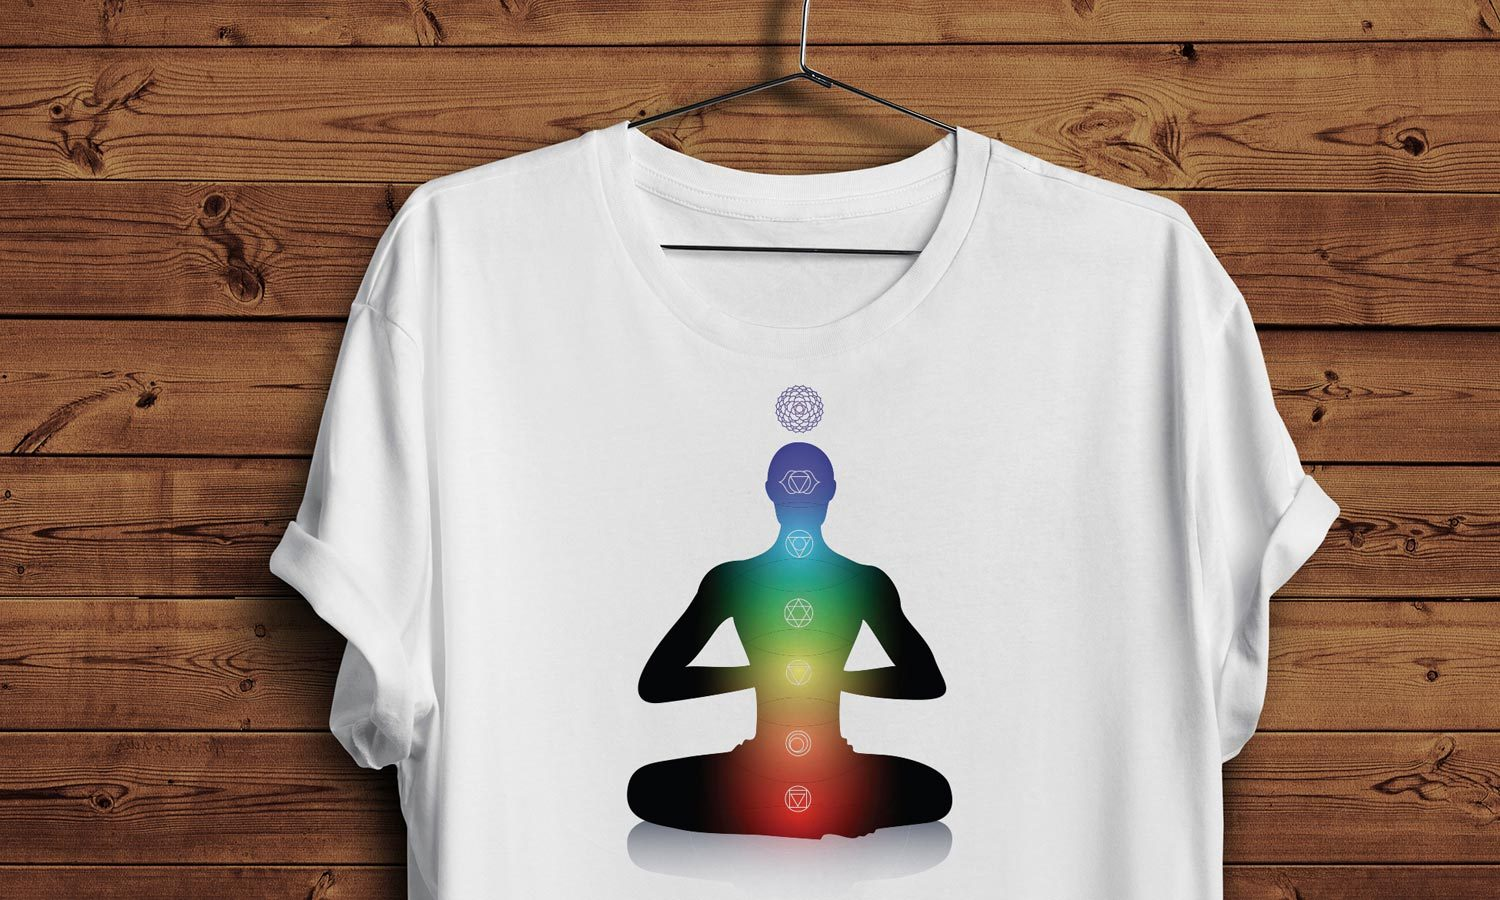 Top majice Man with light chakras, T-Shirt Moška, Ženska in Otroški model 150g.  TS008